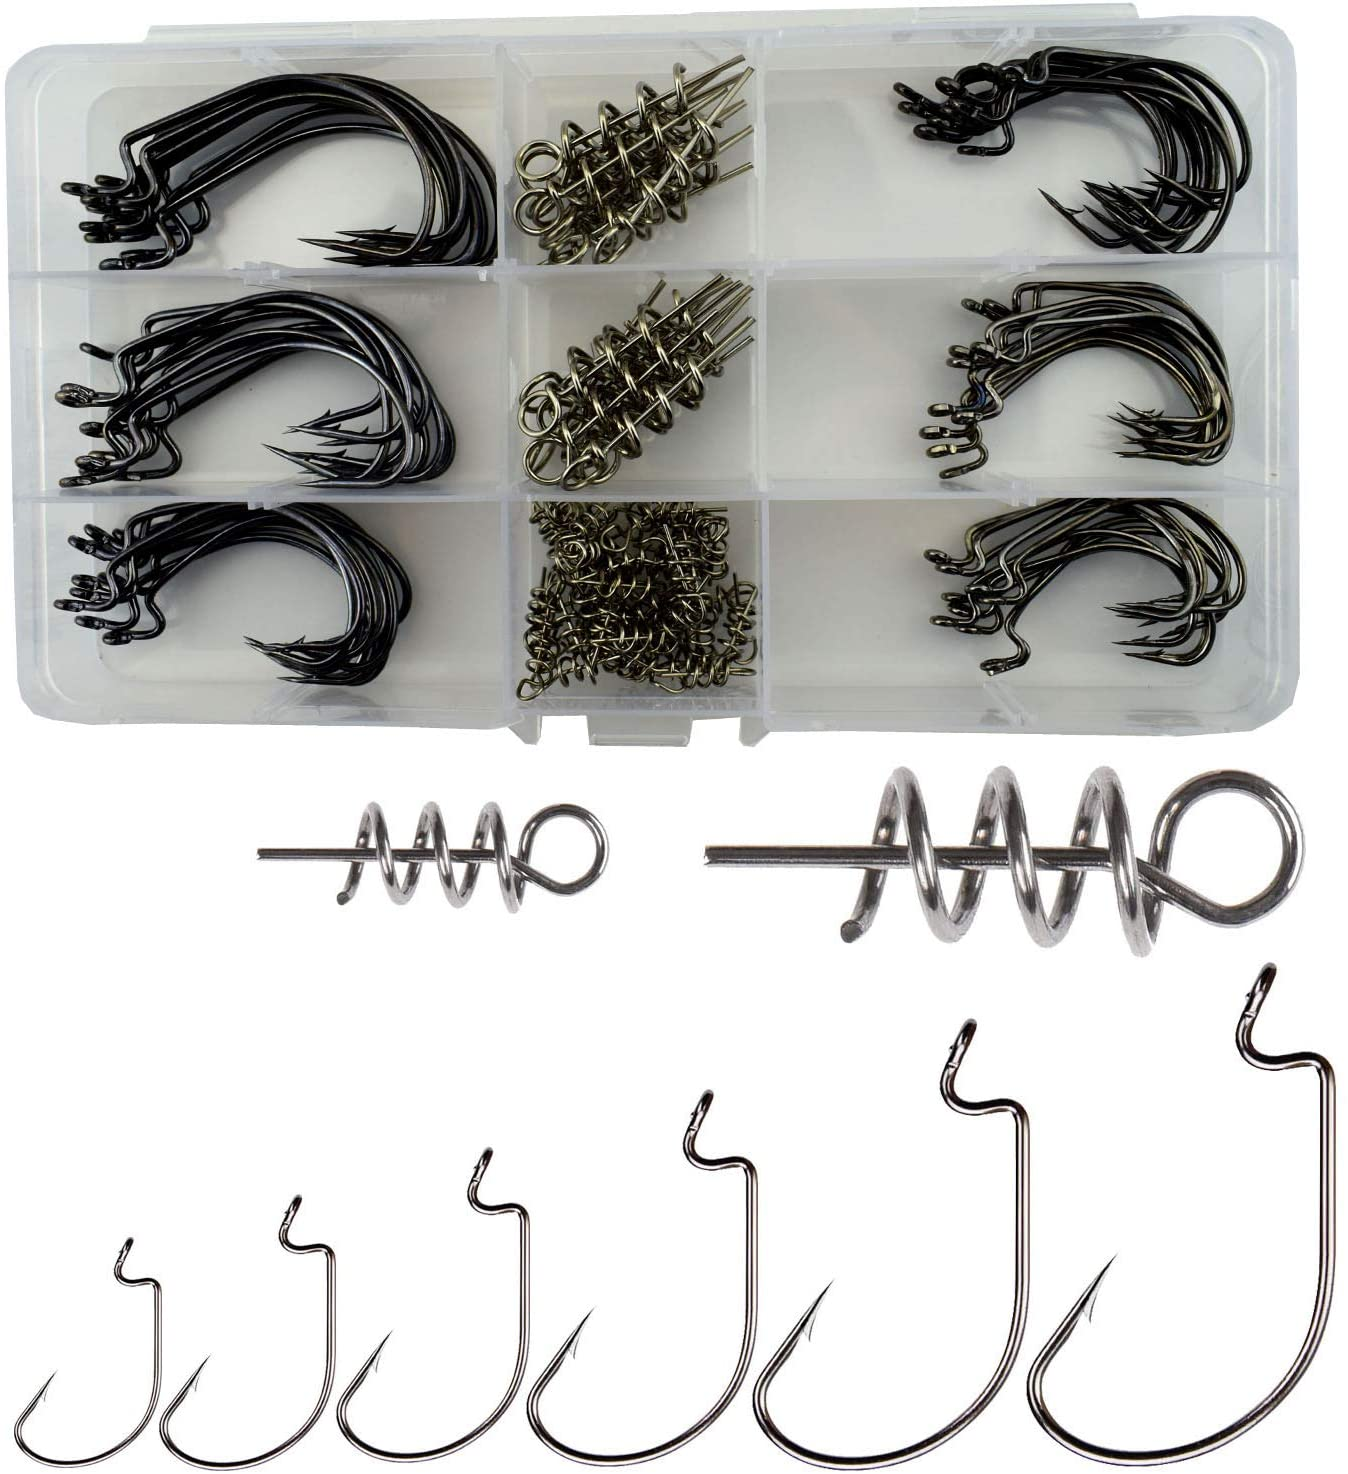 Luengo Fishing Offset Worm Hook, 100pcs/box High Carbon Steel Wide Gap Bait Jig Fish Hooks with Plastic Box #1-5/0